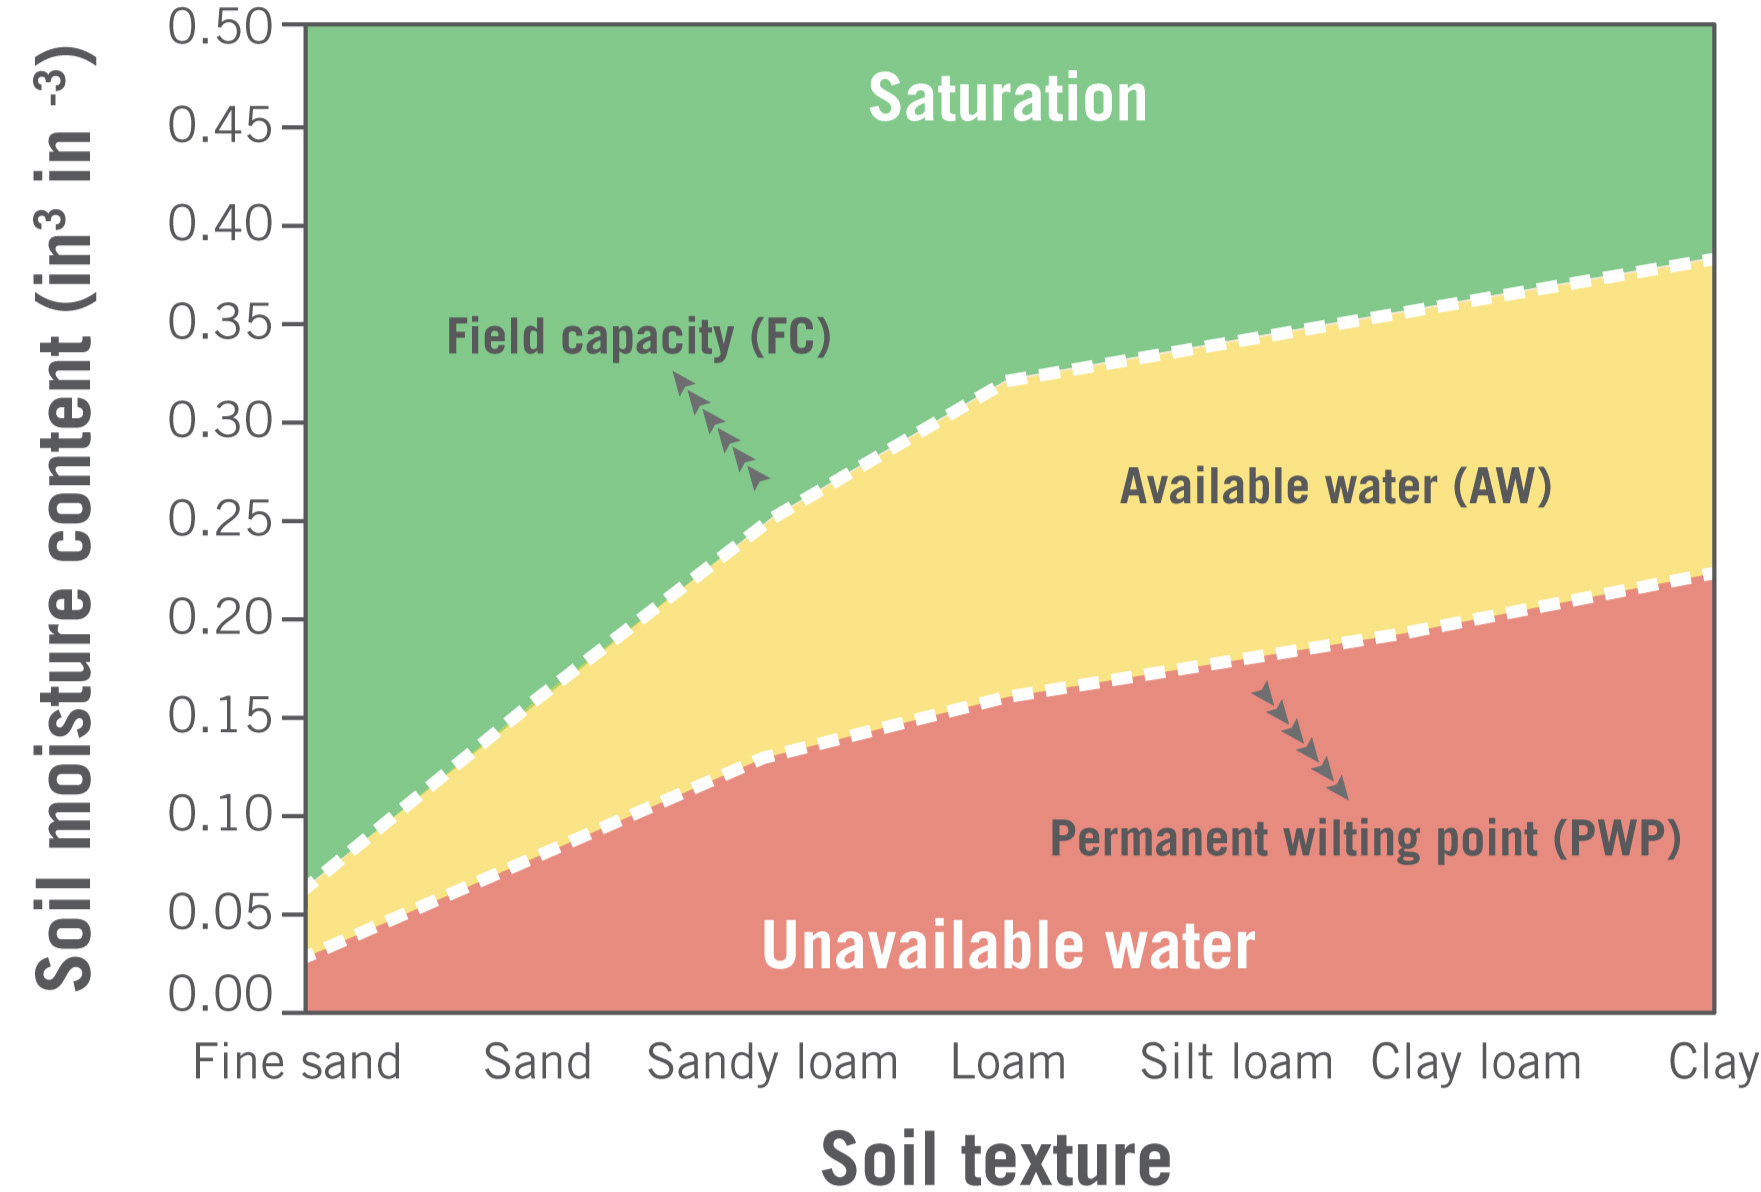 Graph of soil texture and saturation